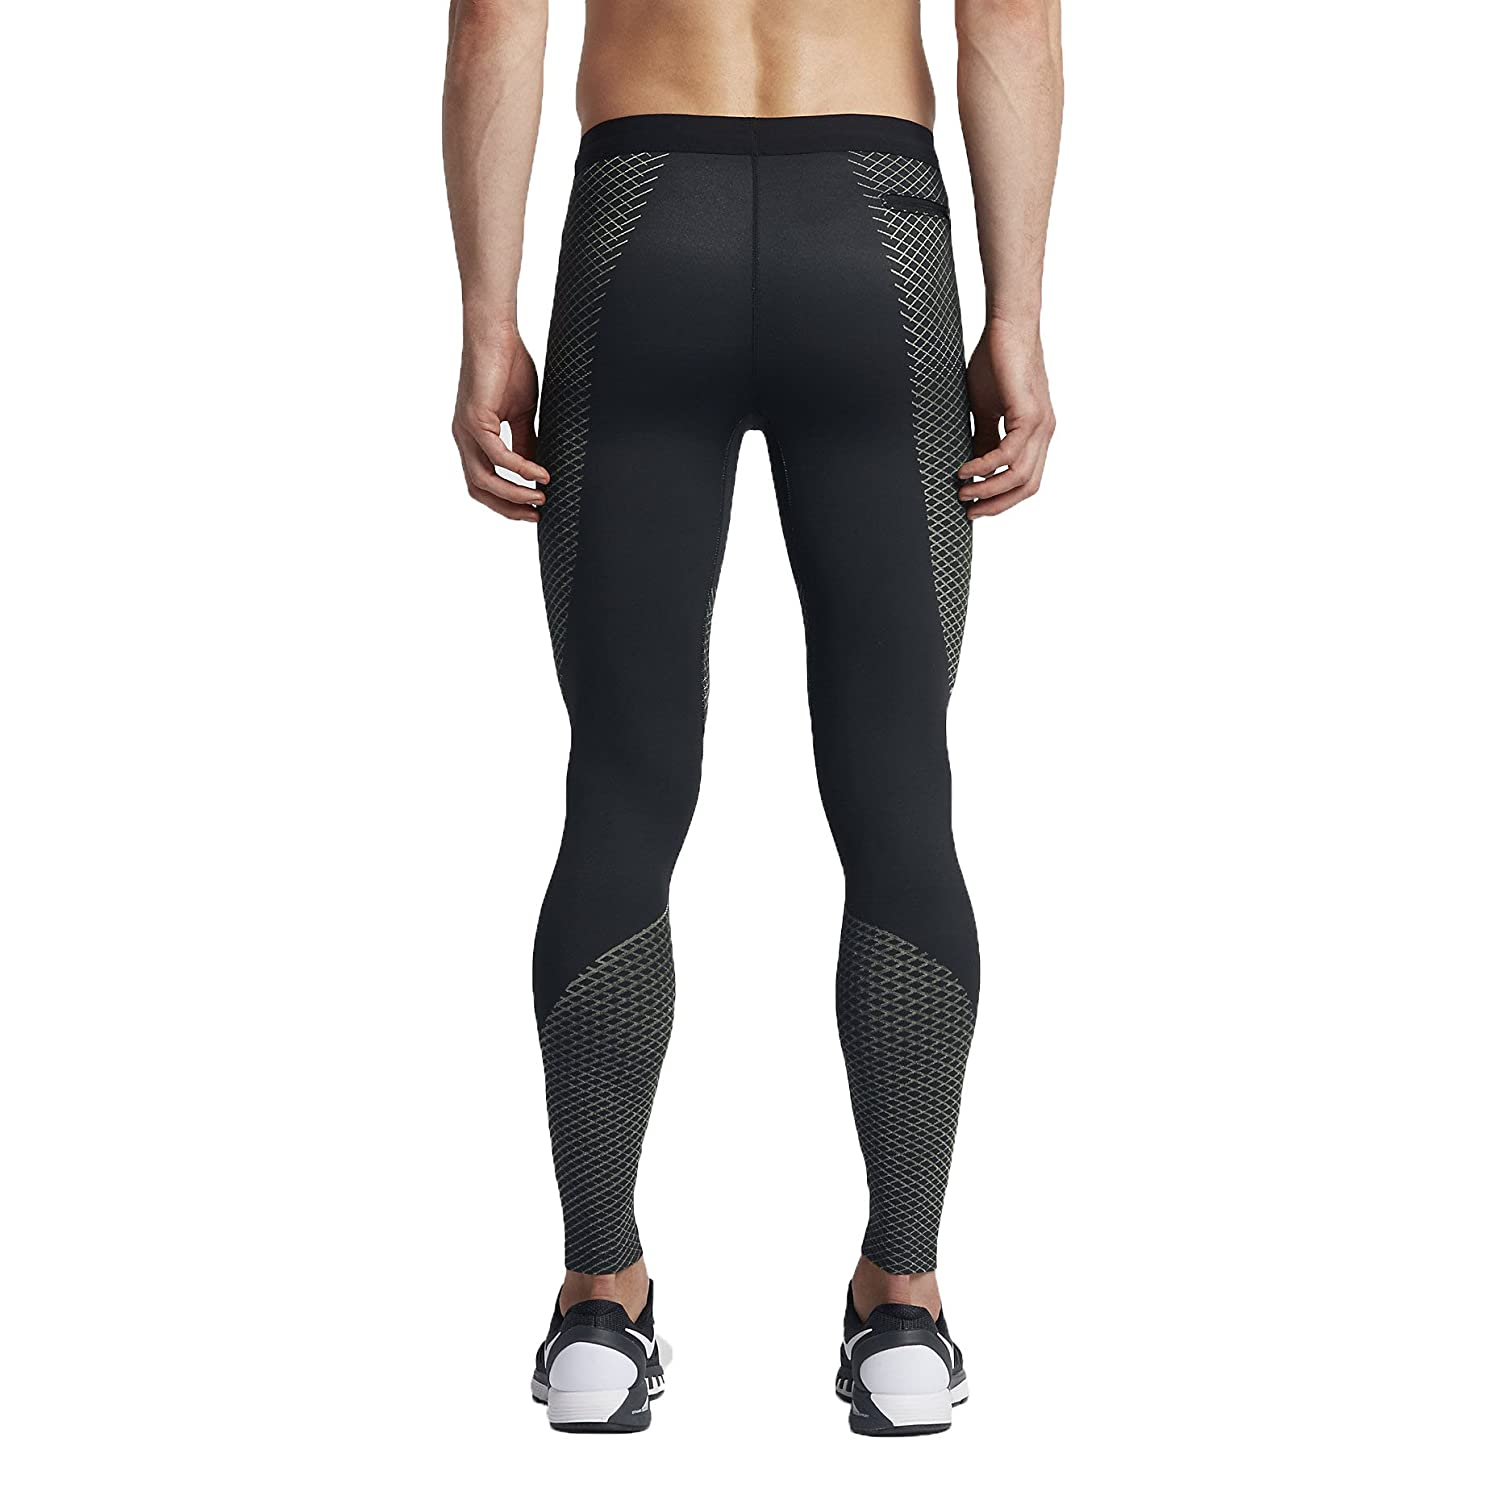 d797faae12 Amazon.com : Nike Zonal Strength Mens Running Tights (S, Black/Grey) :  Sports & Outdoors